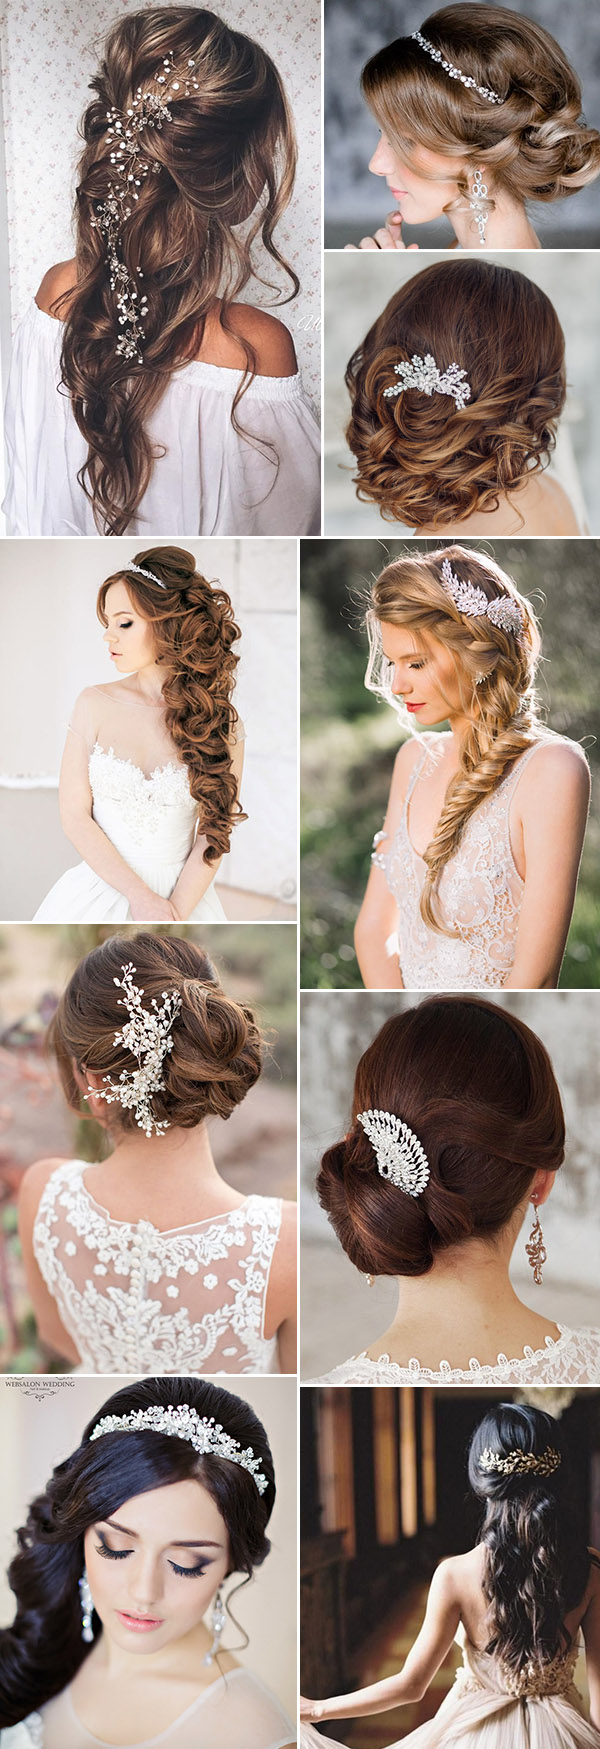 gorgeous-wedding-hairstyles-with-bridal-headpieces-and-wedding-hair-accessories